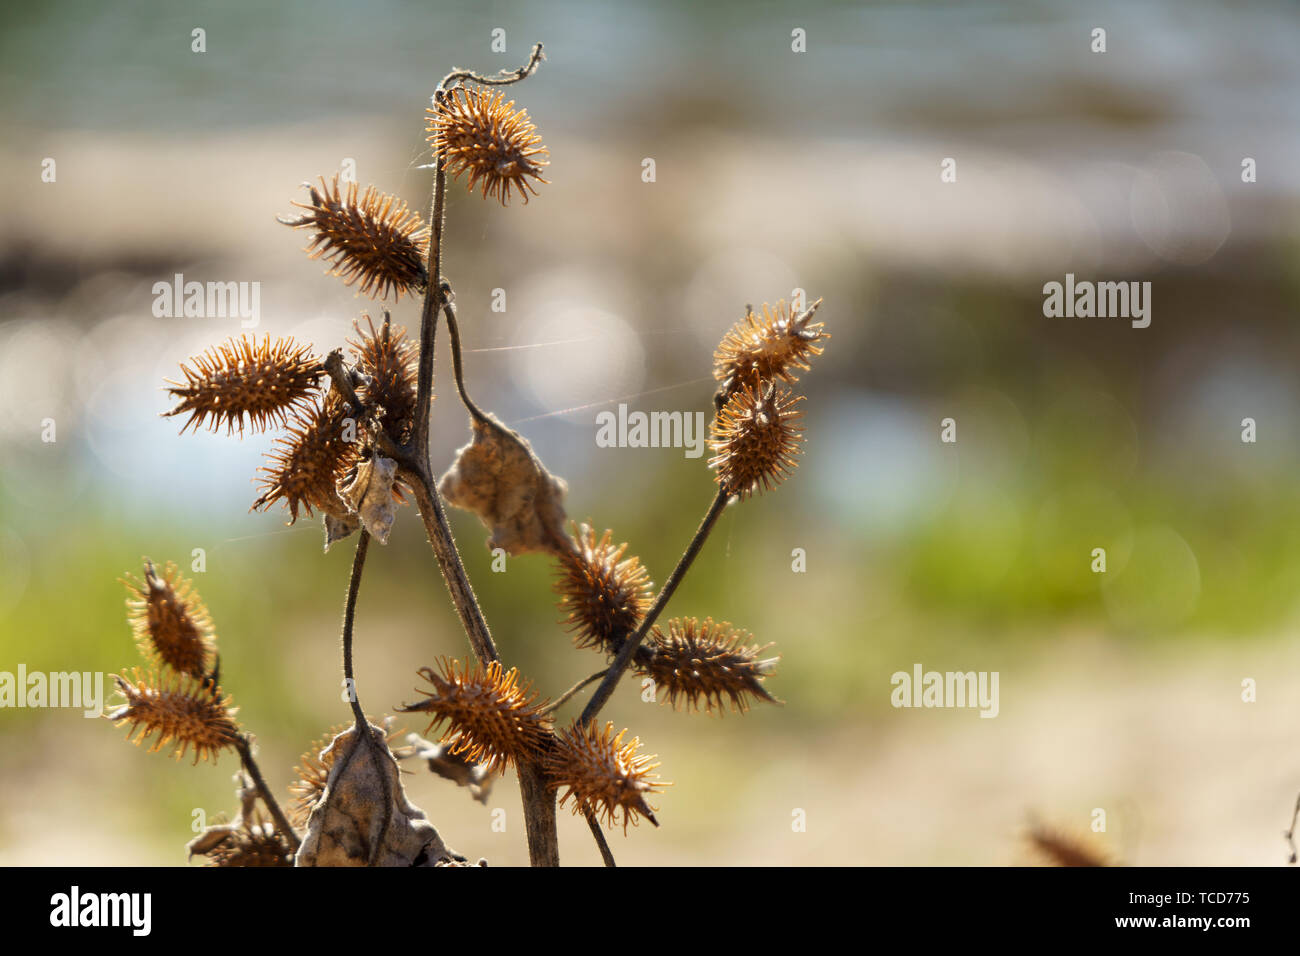 Cocklebur Stock Photos & Cocklebur Stock Images - Alamy